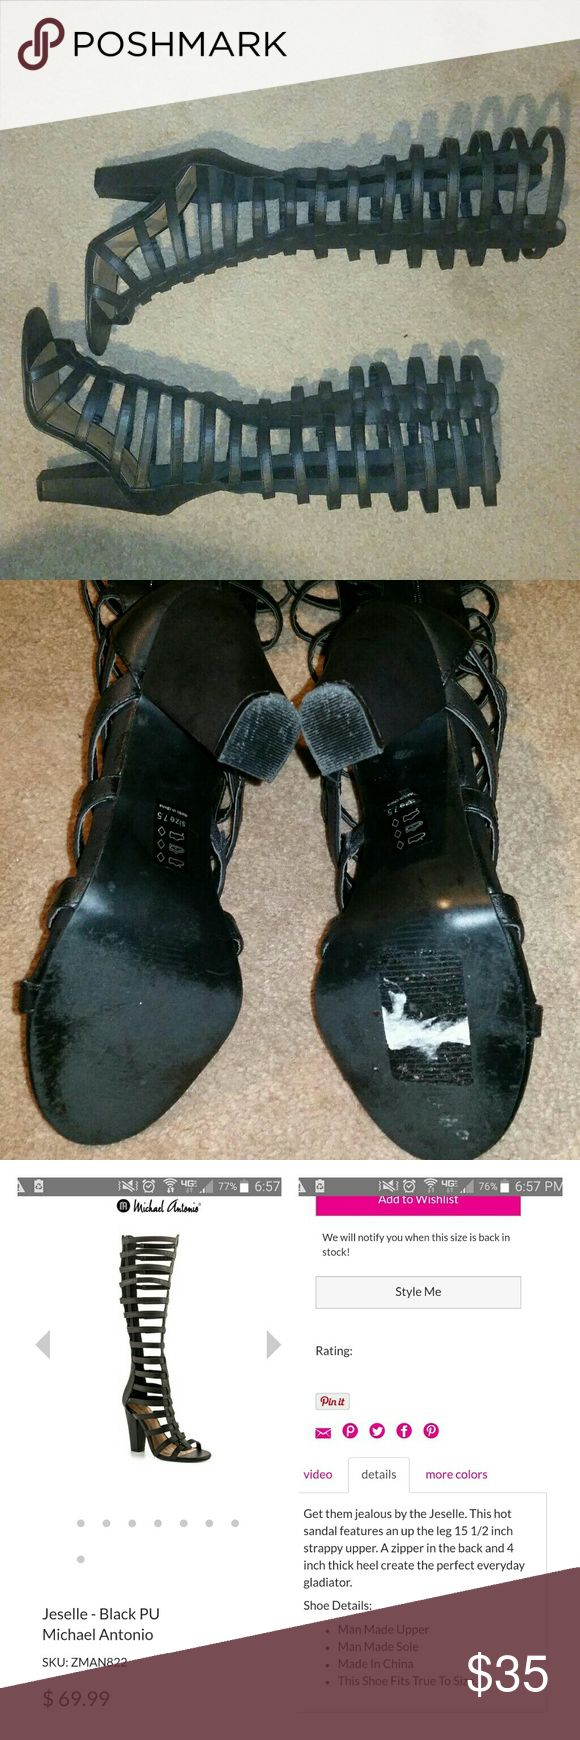 Strappy Gladiator Sandal Black sandal heels, with a zipper in the back. Size 7.5. I added a picture of the actual description. Just realized they have a scratch so im lowering the price. No Trades. Shoes Sandals